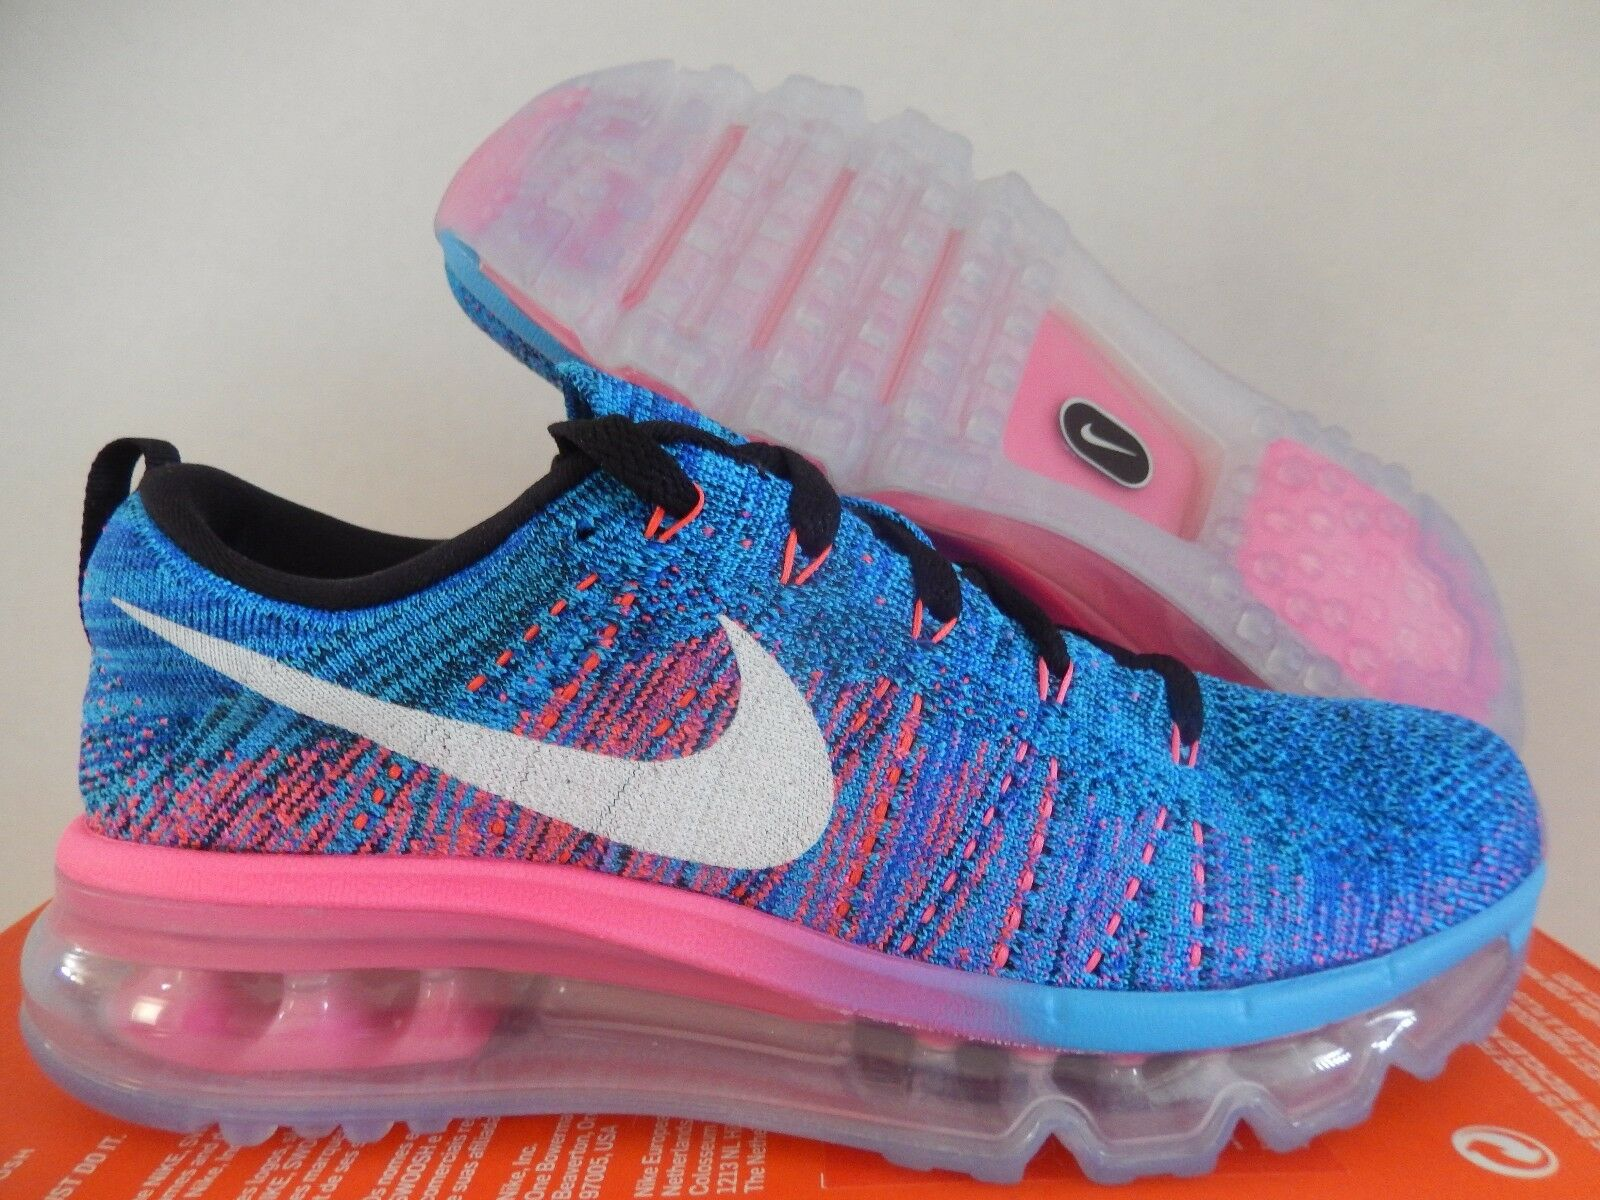 WMNS NIKE FLYKNIT MAX BLACK-WHITE-BLUE-GLOW-RACER BLUE-PINK Price reduction